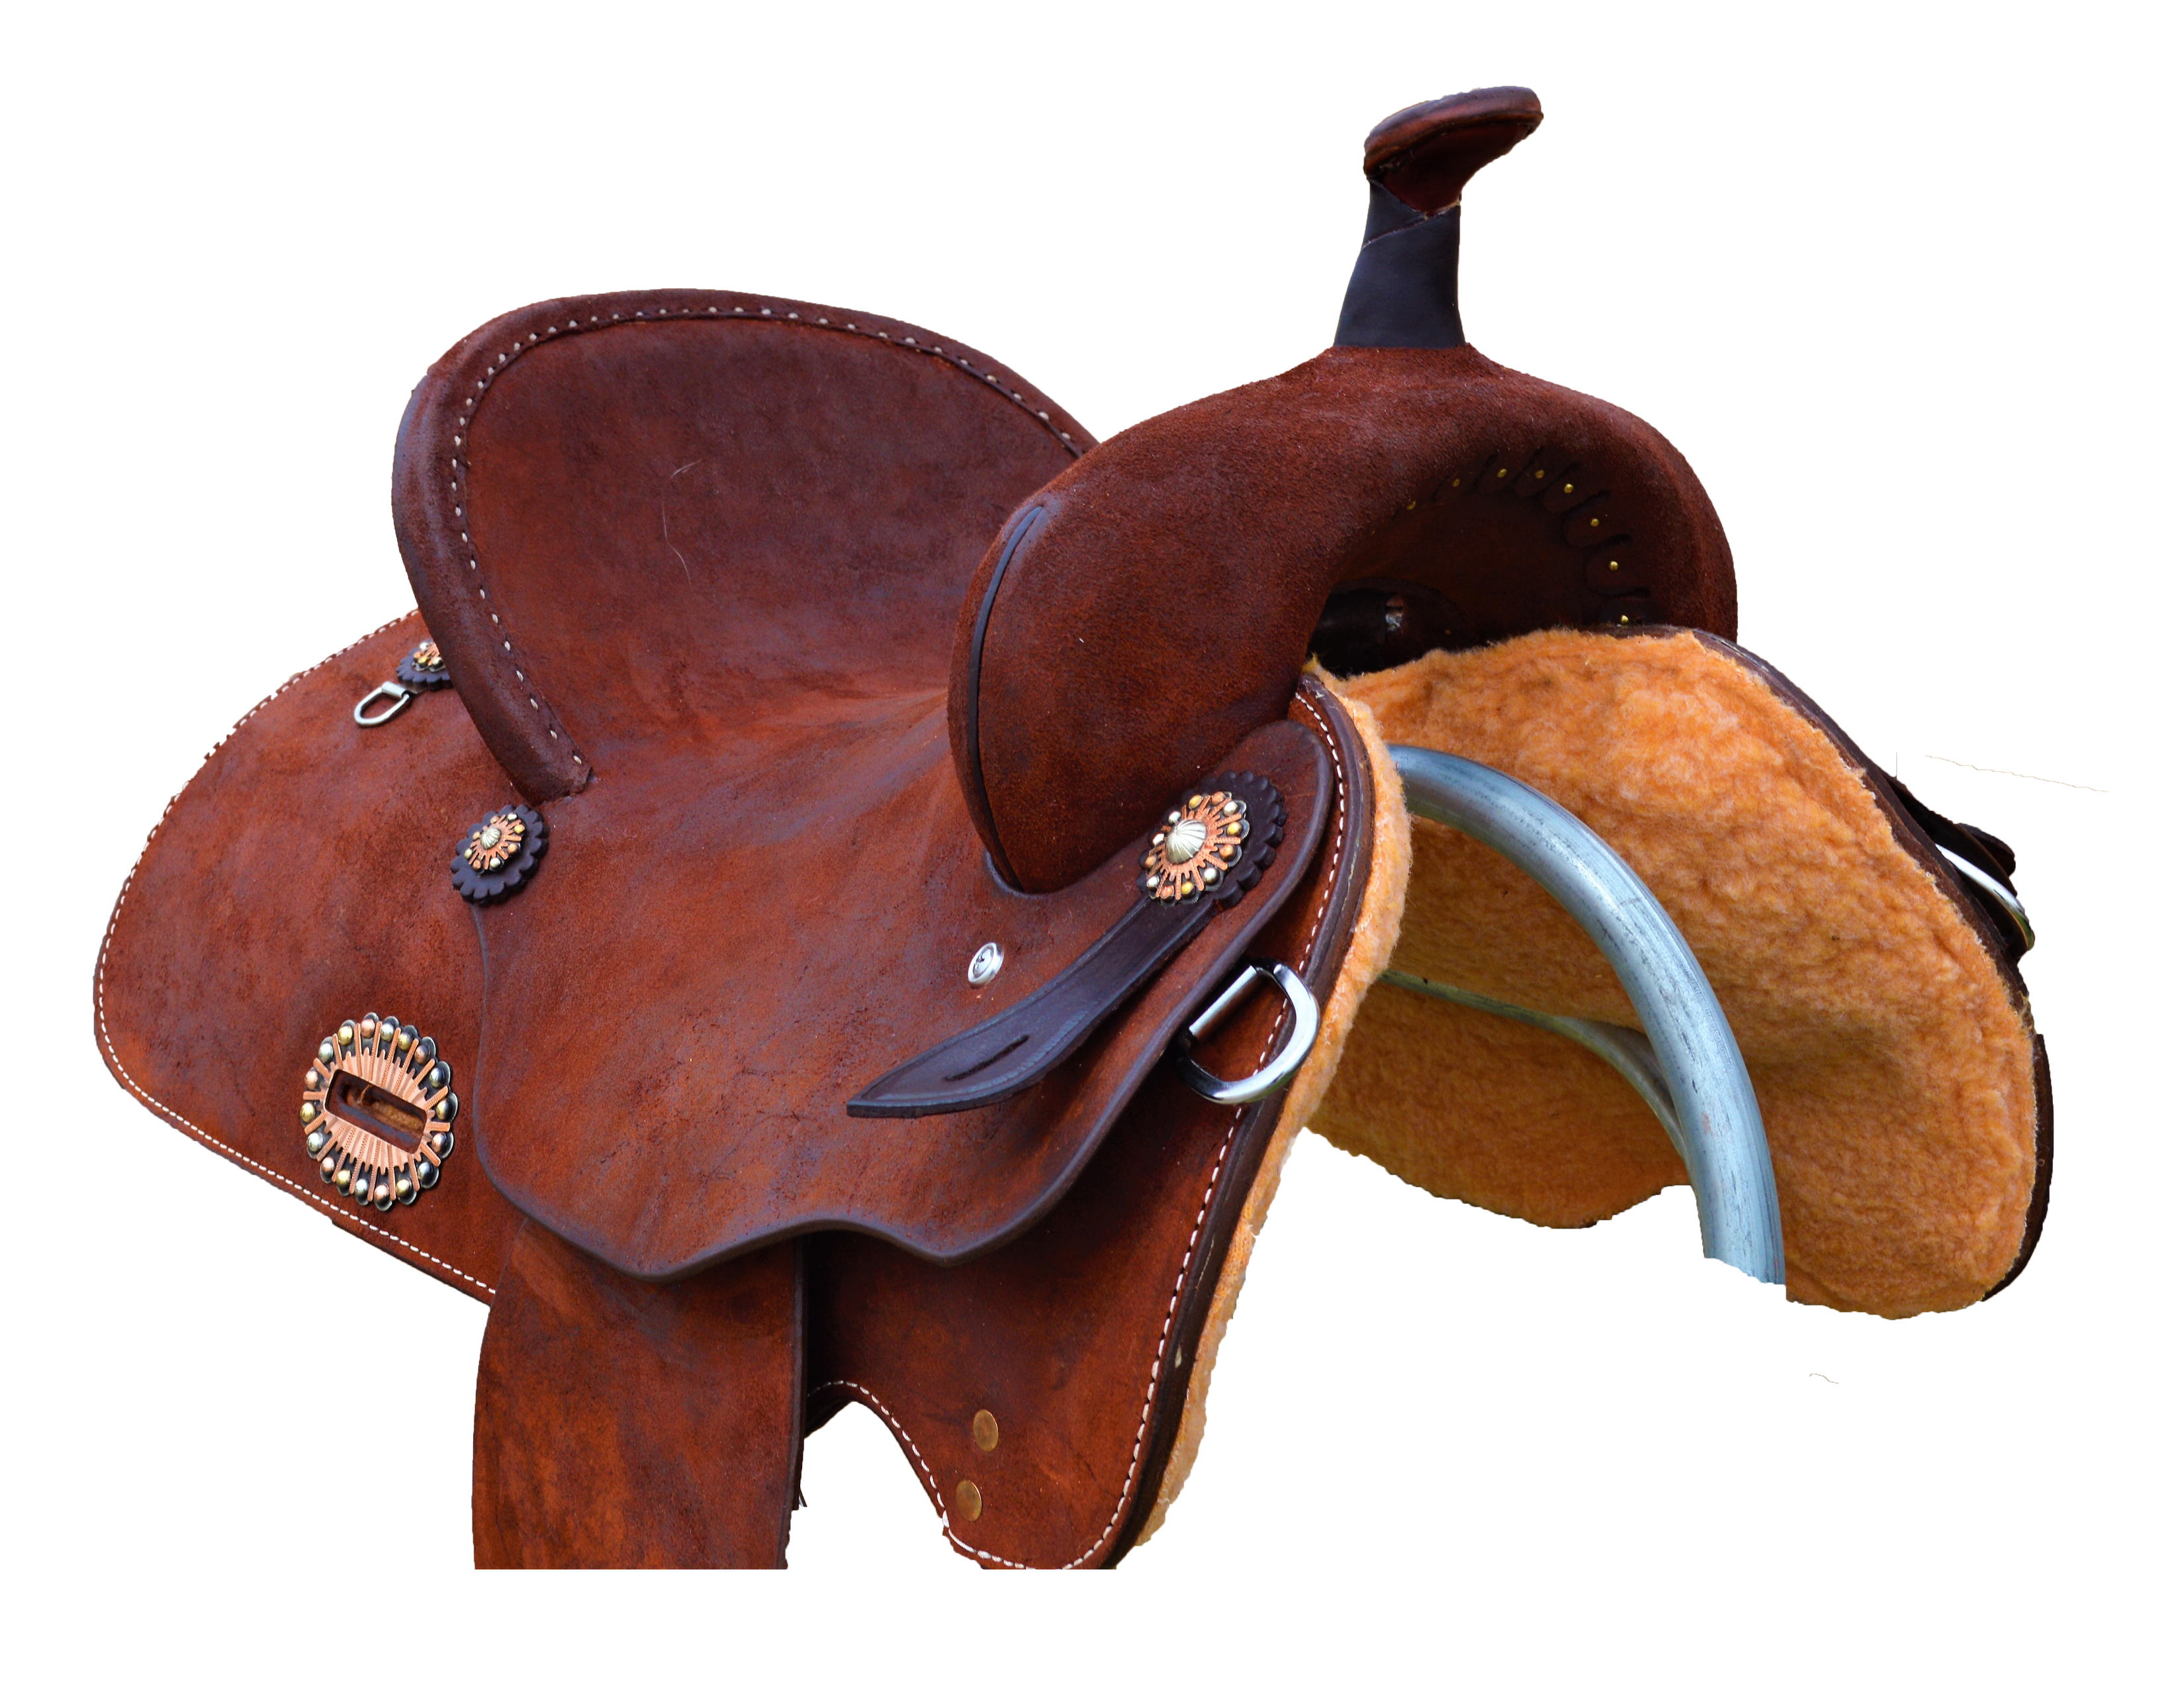 1418 Barrel Saddle in fully oiled roughout